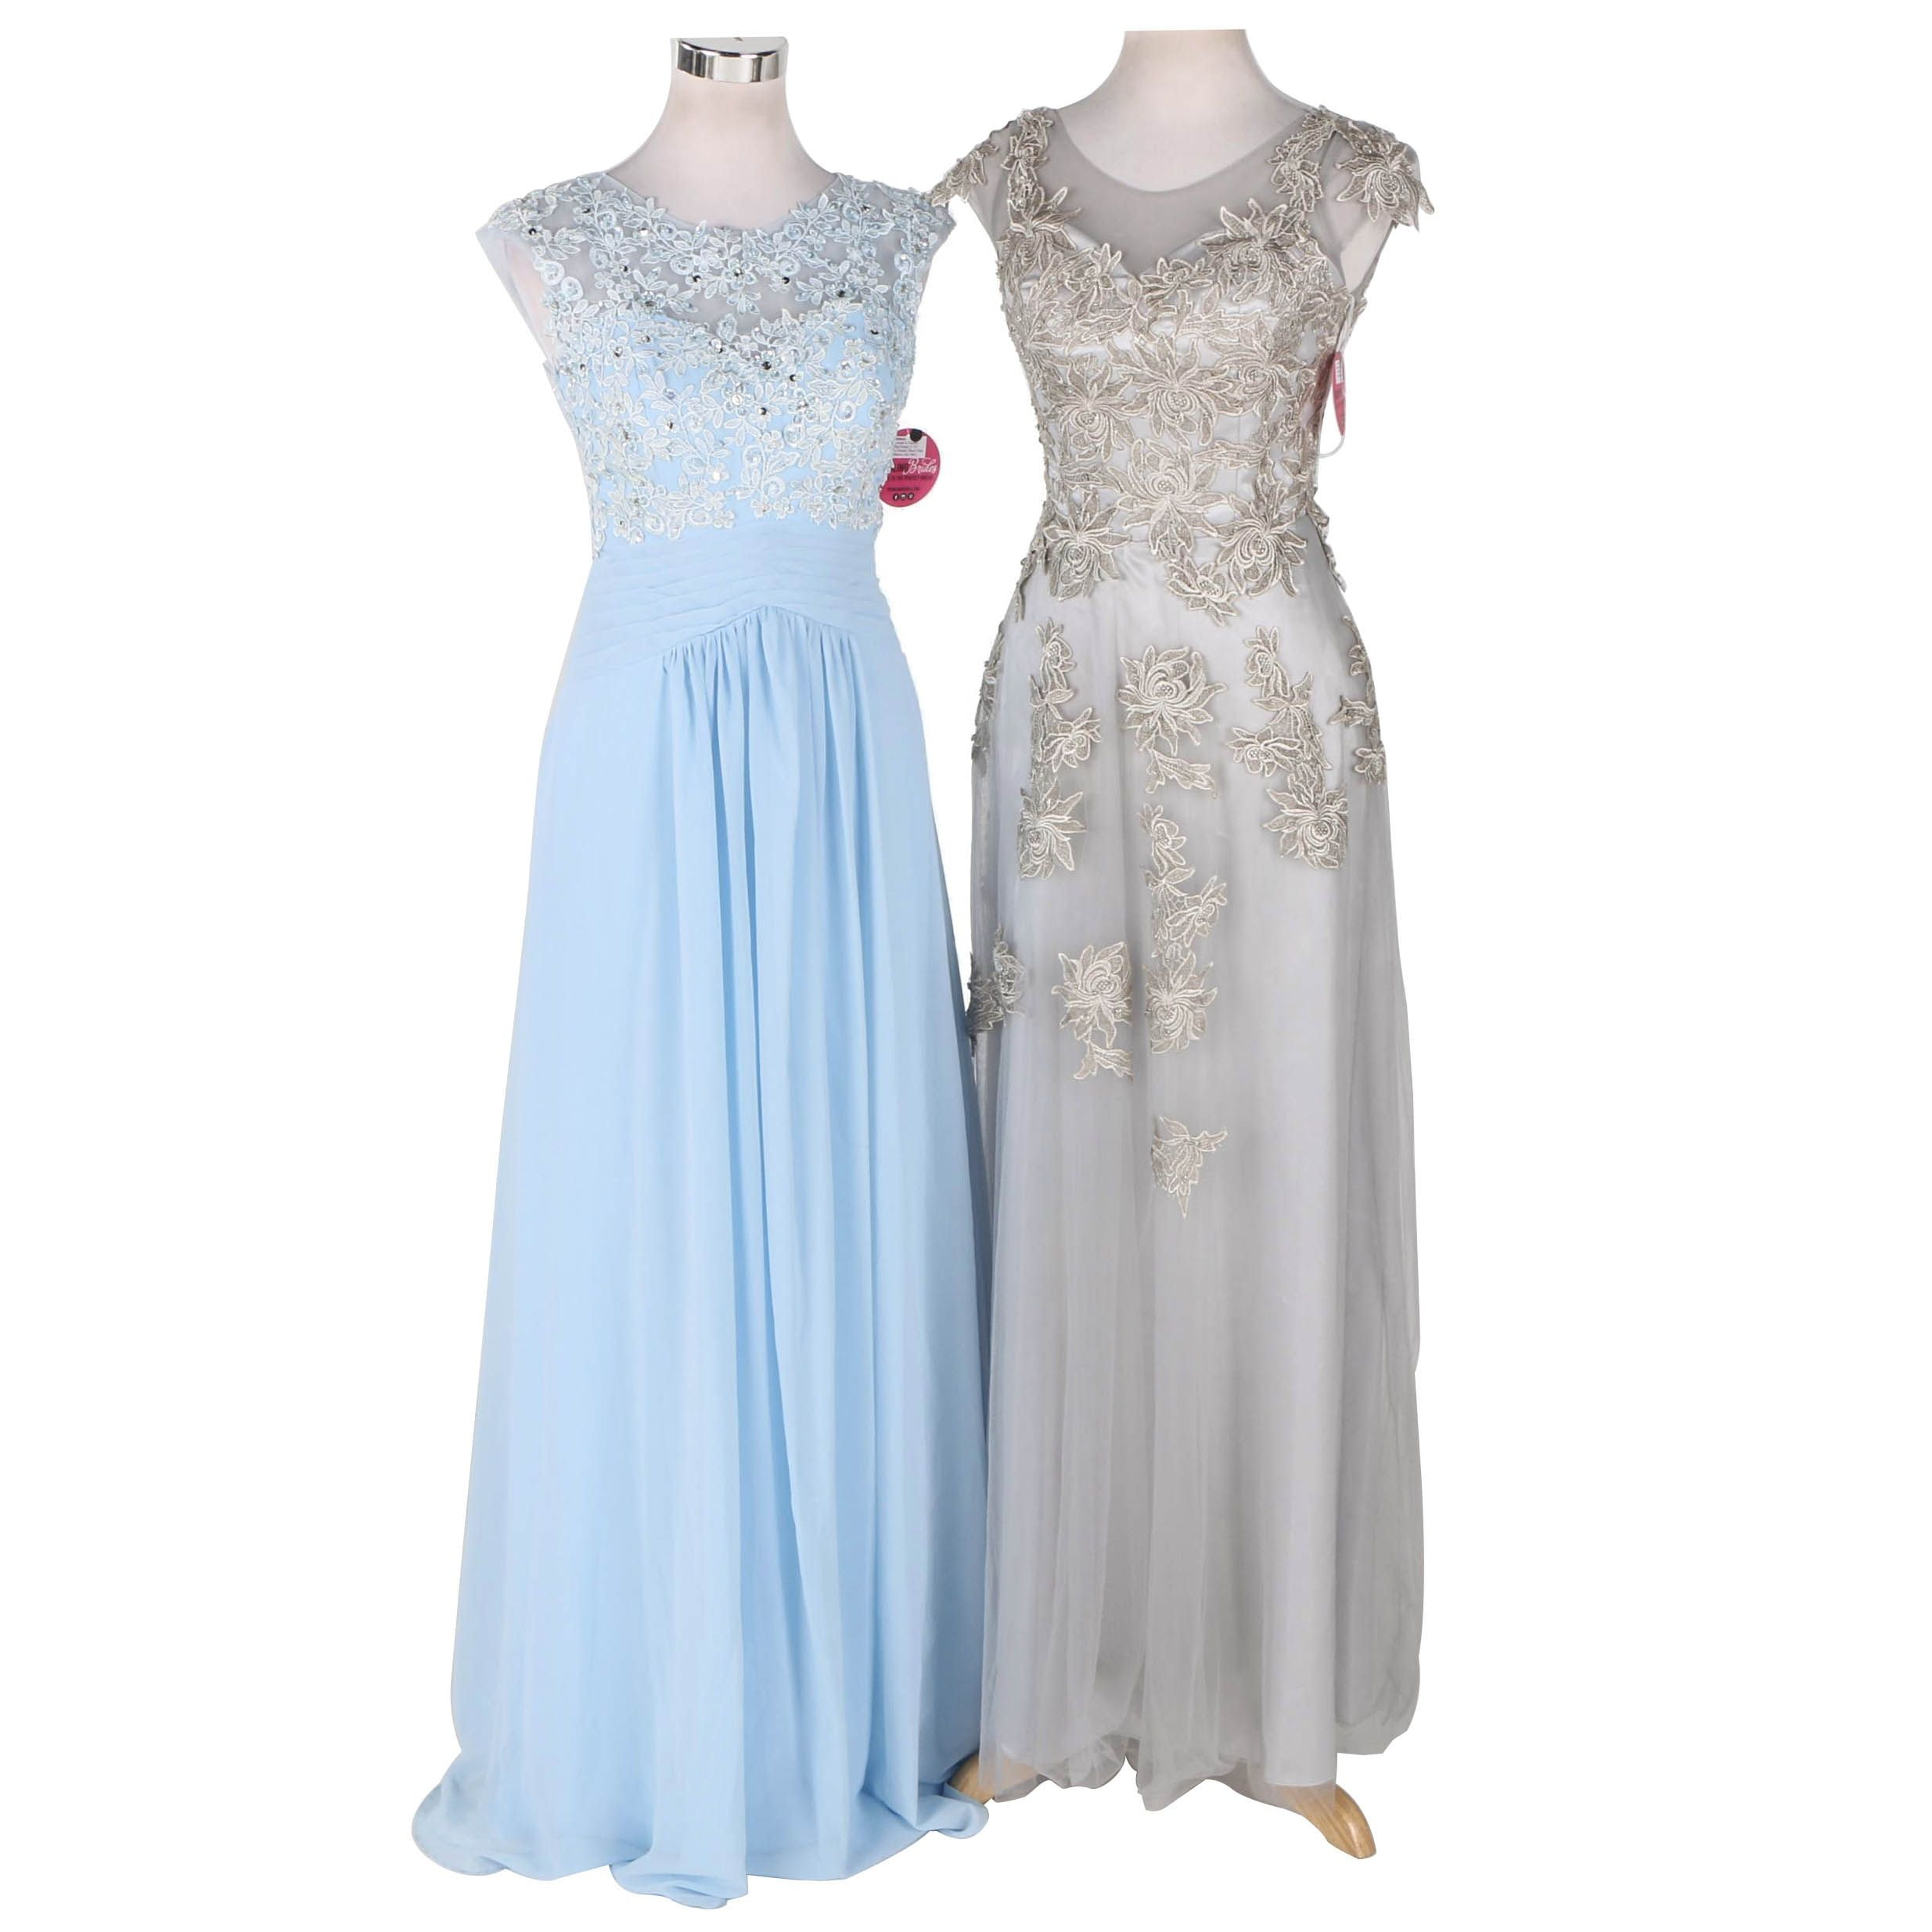 Pair of Women's Evening Dresses